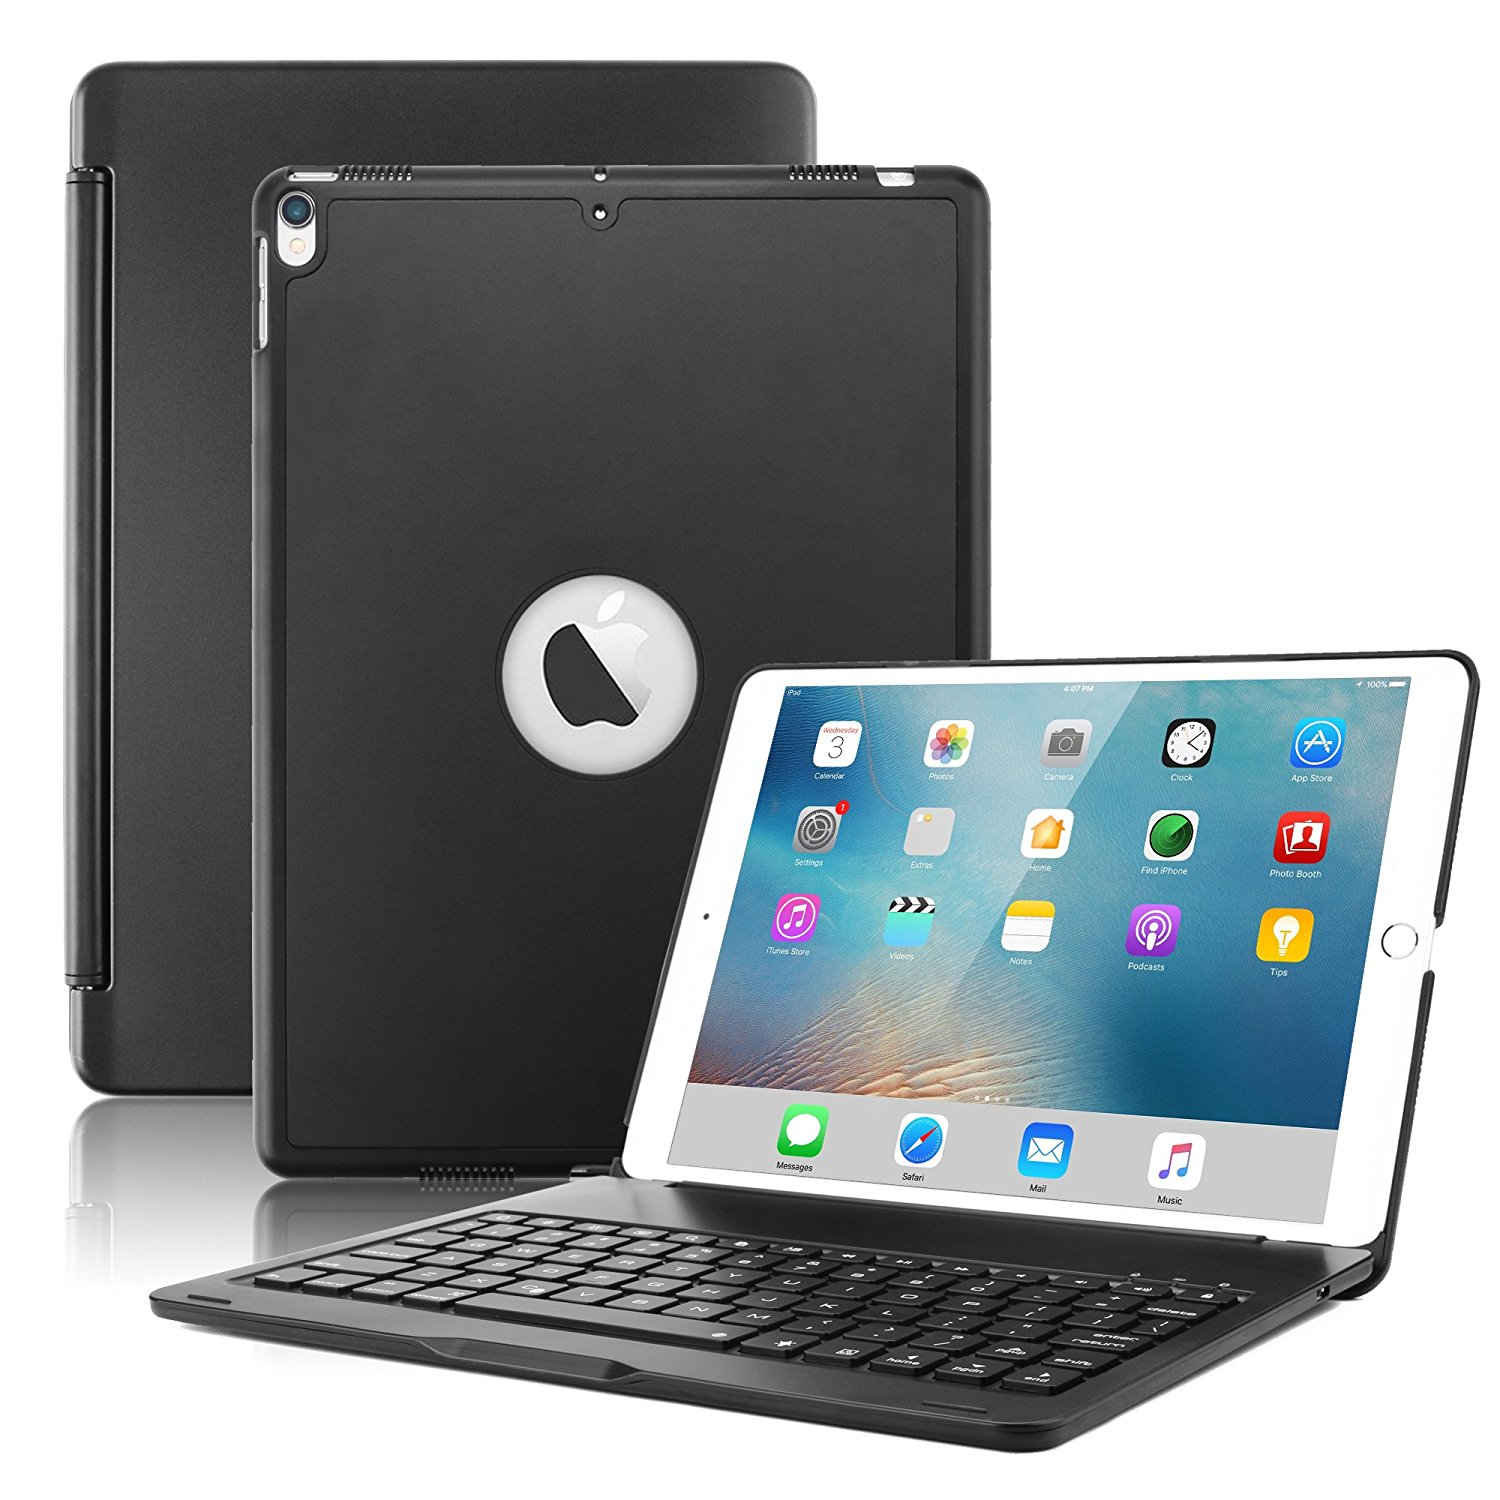 For New IPad Pro 10.5 Keyboard Case, Wireless Bluetooth Keyboard Smart Cover For IPad Pro 10.5